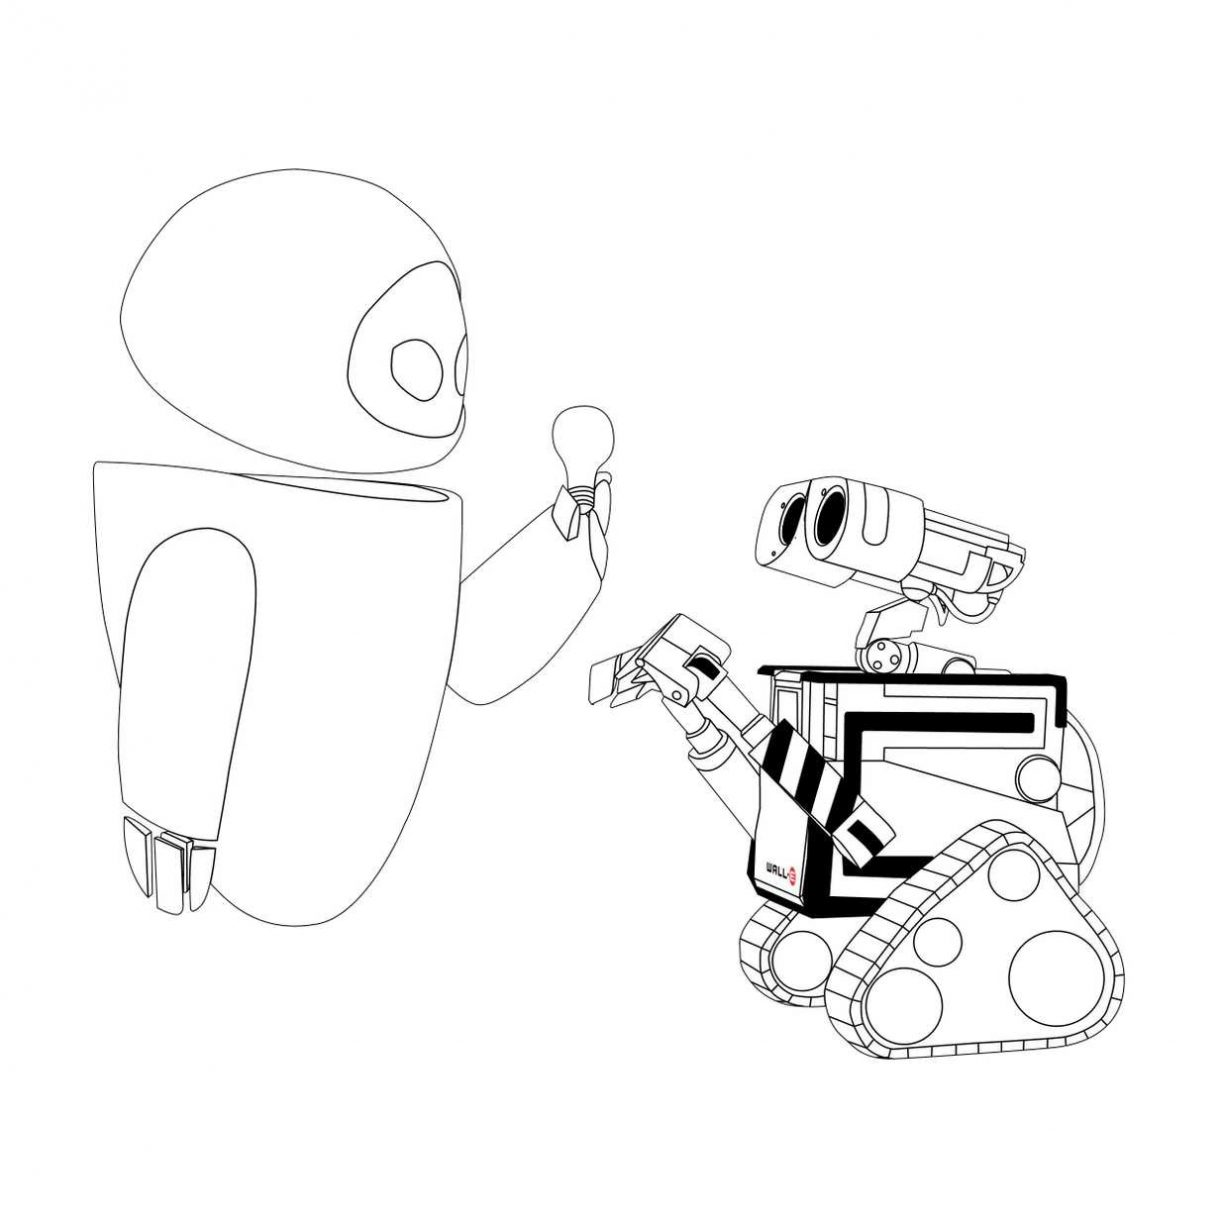 1224x1224 Wall E And Plant Coloring Pages For Kids Lovely Free Printable